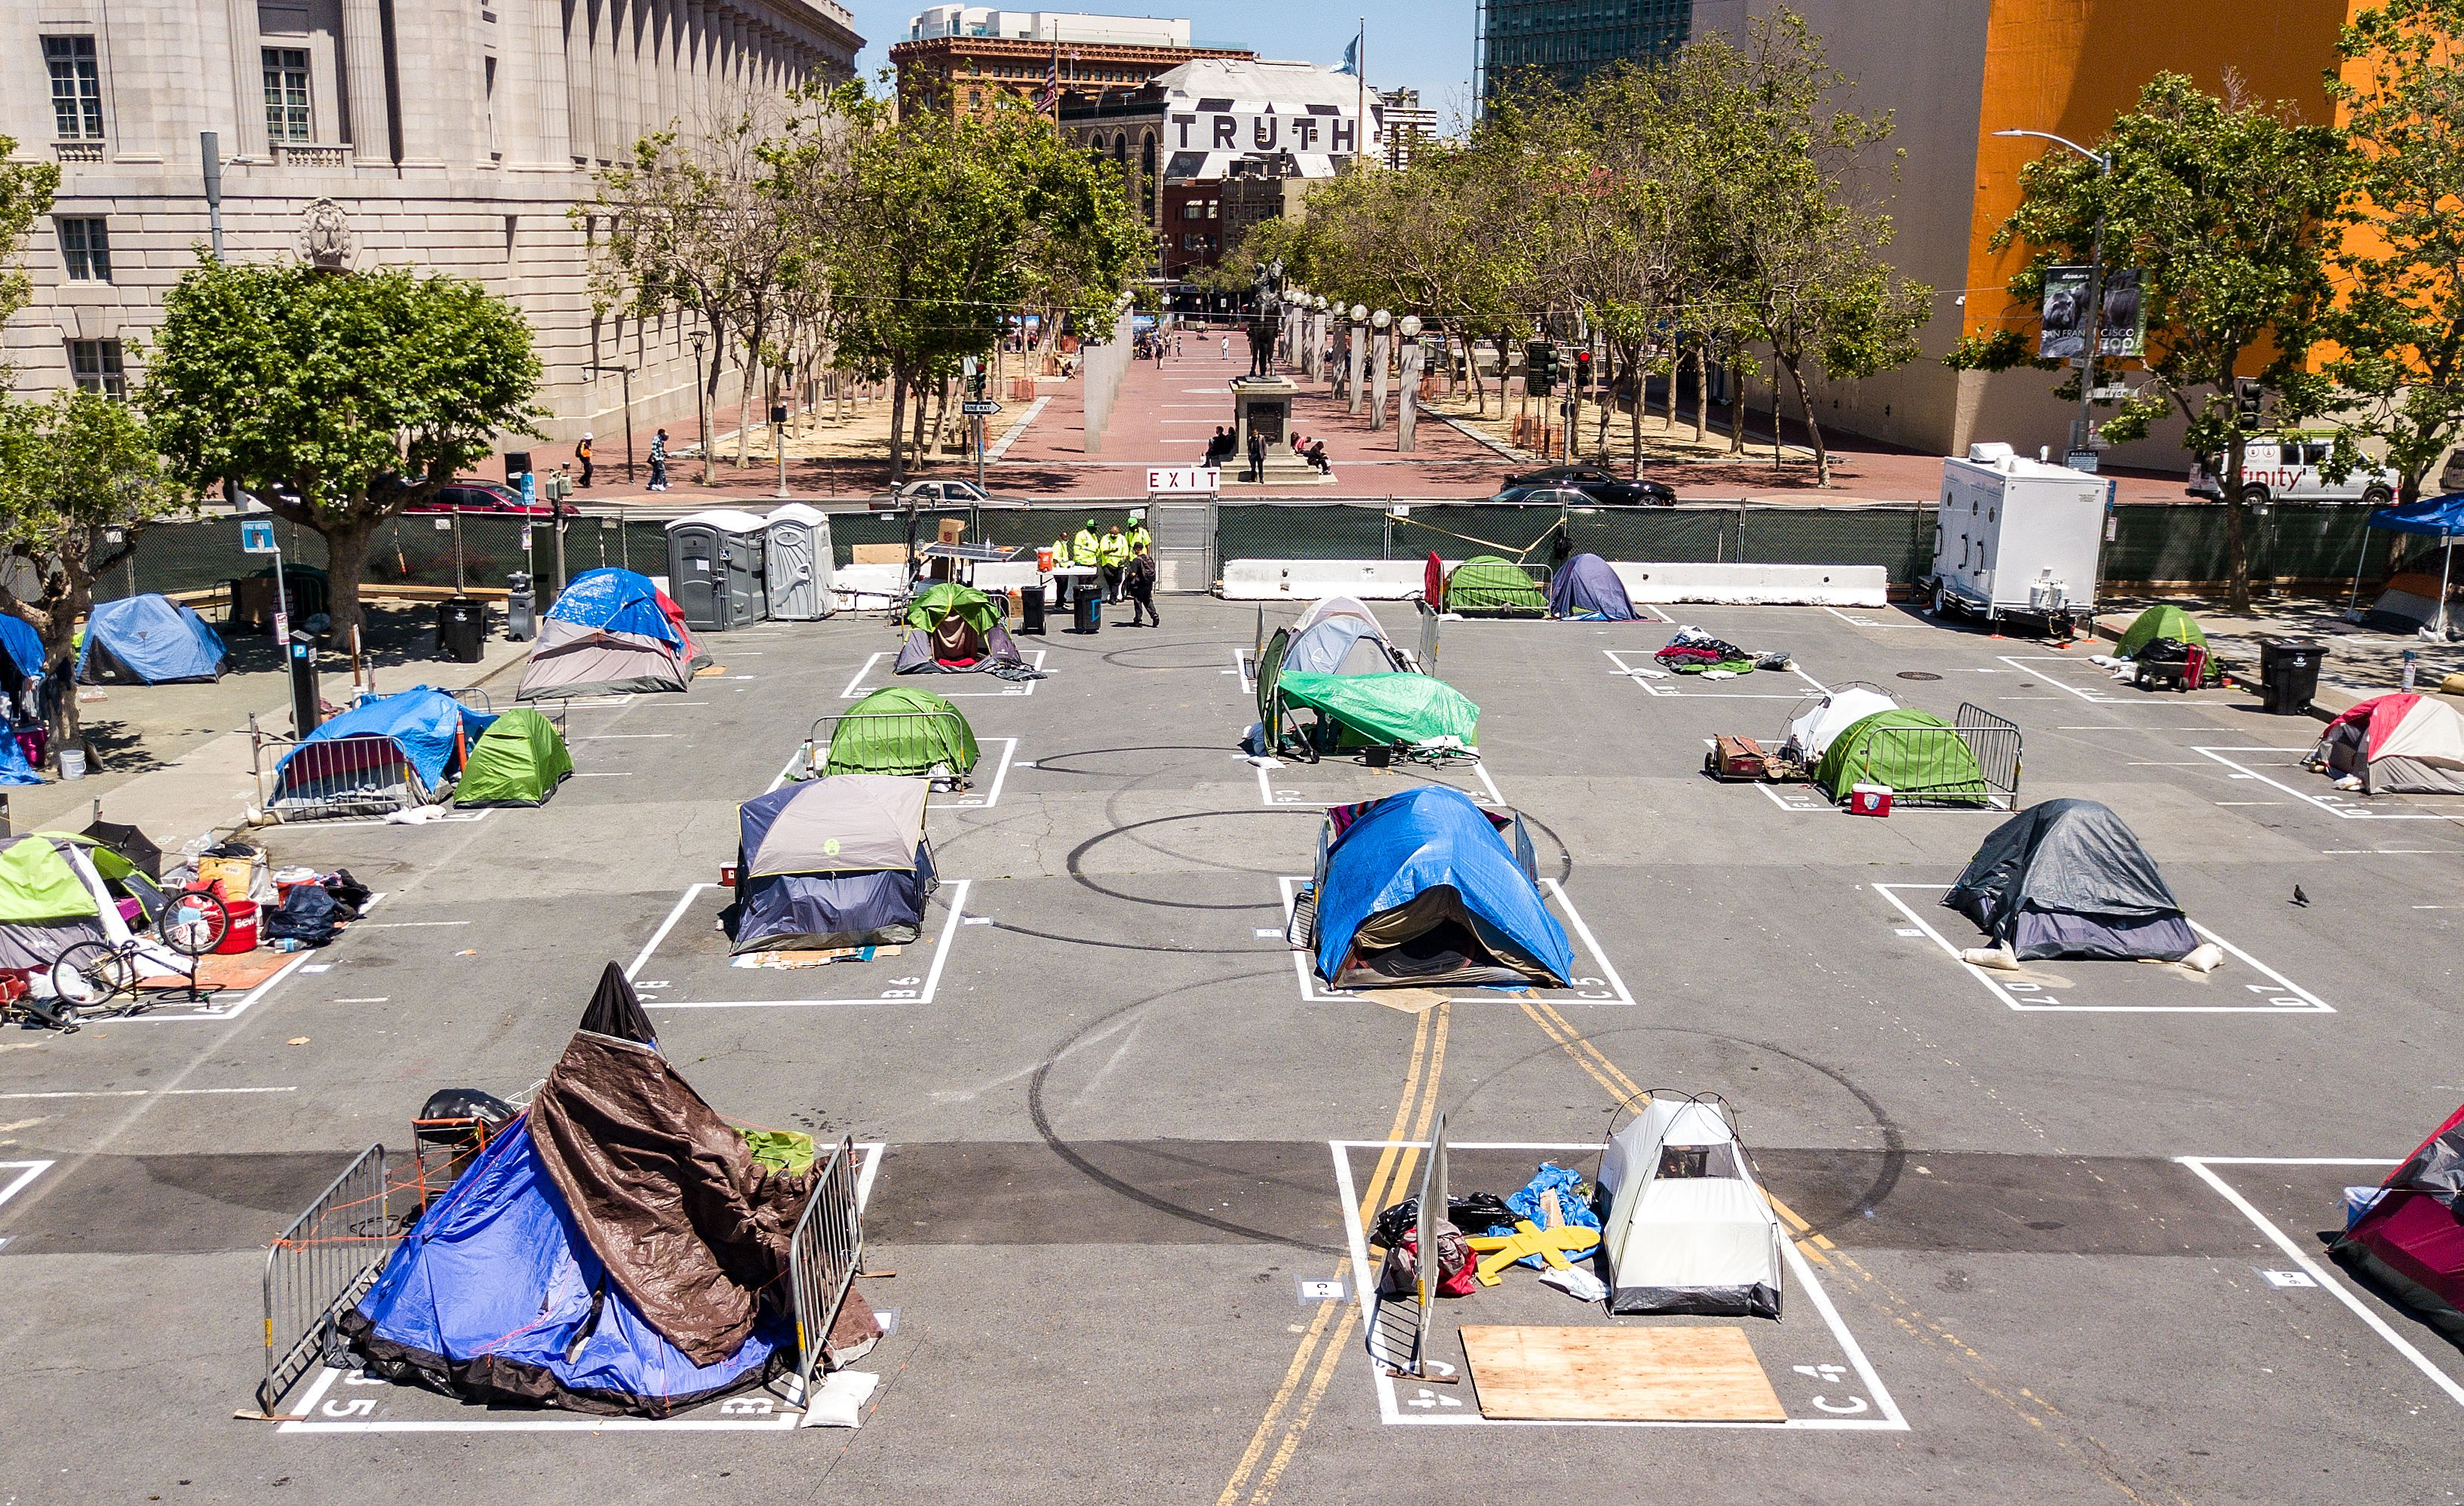 Rectangles are painted on the ground to encourage homeless people to keep social distancing at a city-sanctioned homeless encampment across from City Hall in San Francisco, California, on May 22, 2020, amid the novel coronavirus pandemic. (Photo by JOSH EDELSON/AFP via Getty Images)